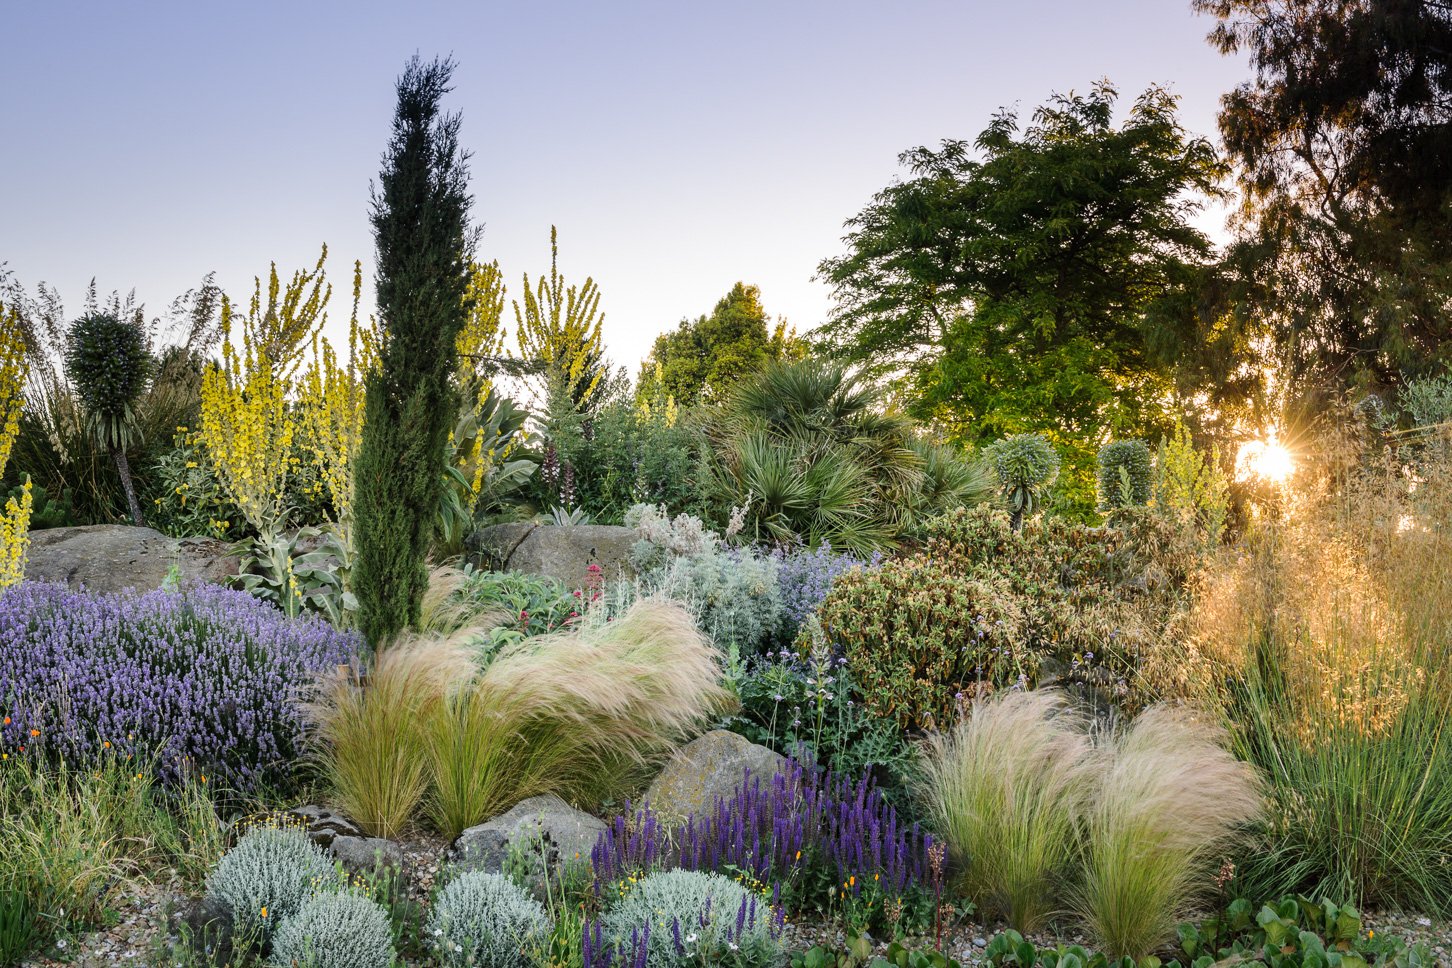 RHS Hyde Hall - Dry Garden, General view with spikes of  Verbascum, Stipa tenuissima, Echiums, Eschscholzia californica, Salvia, Stipa Gigantea,  lavender and Verbena bonariensis